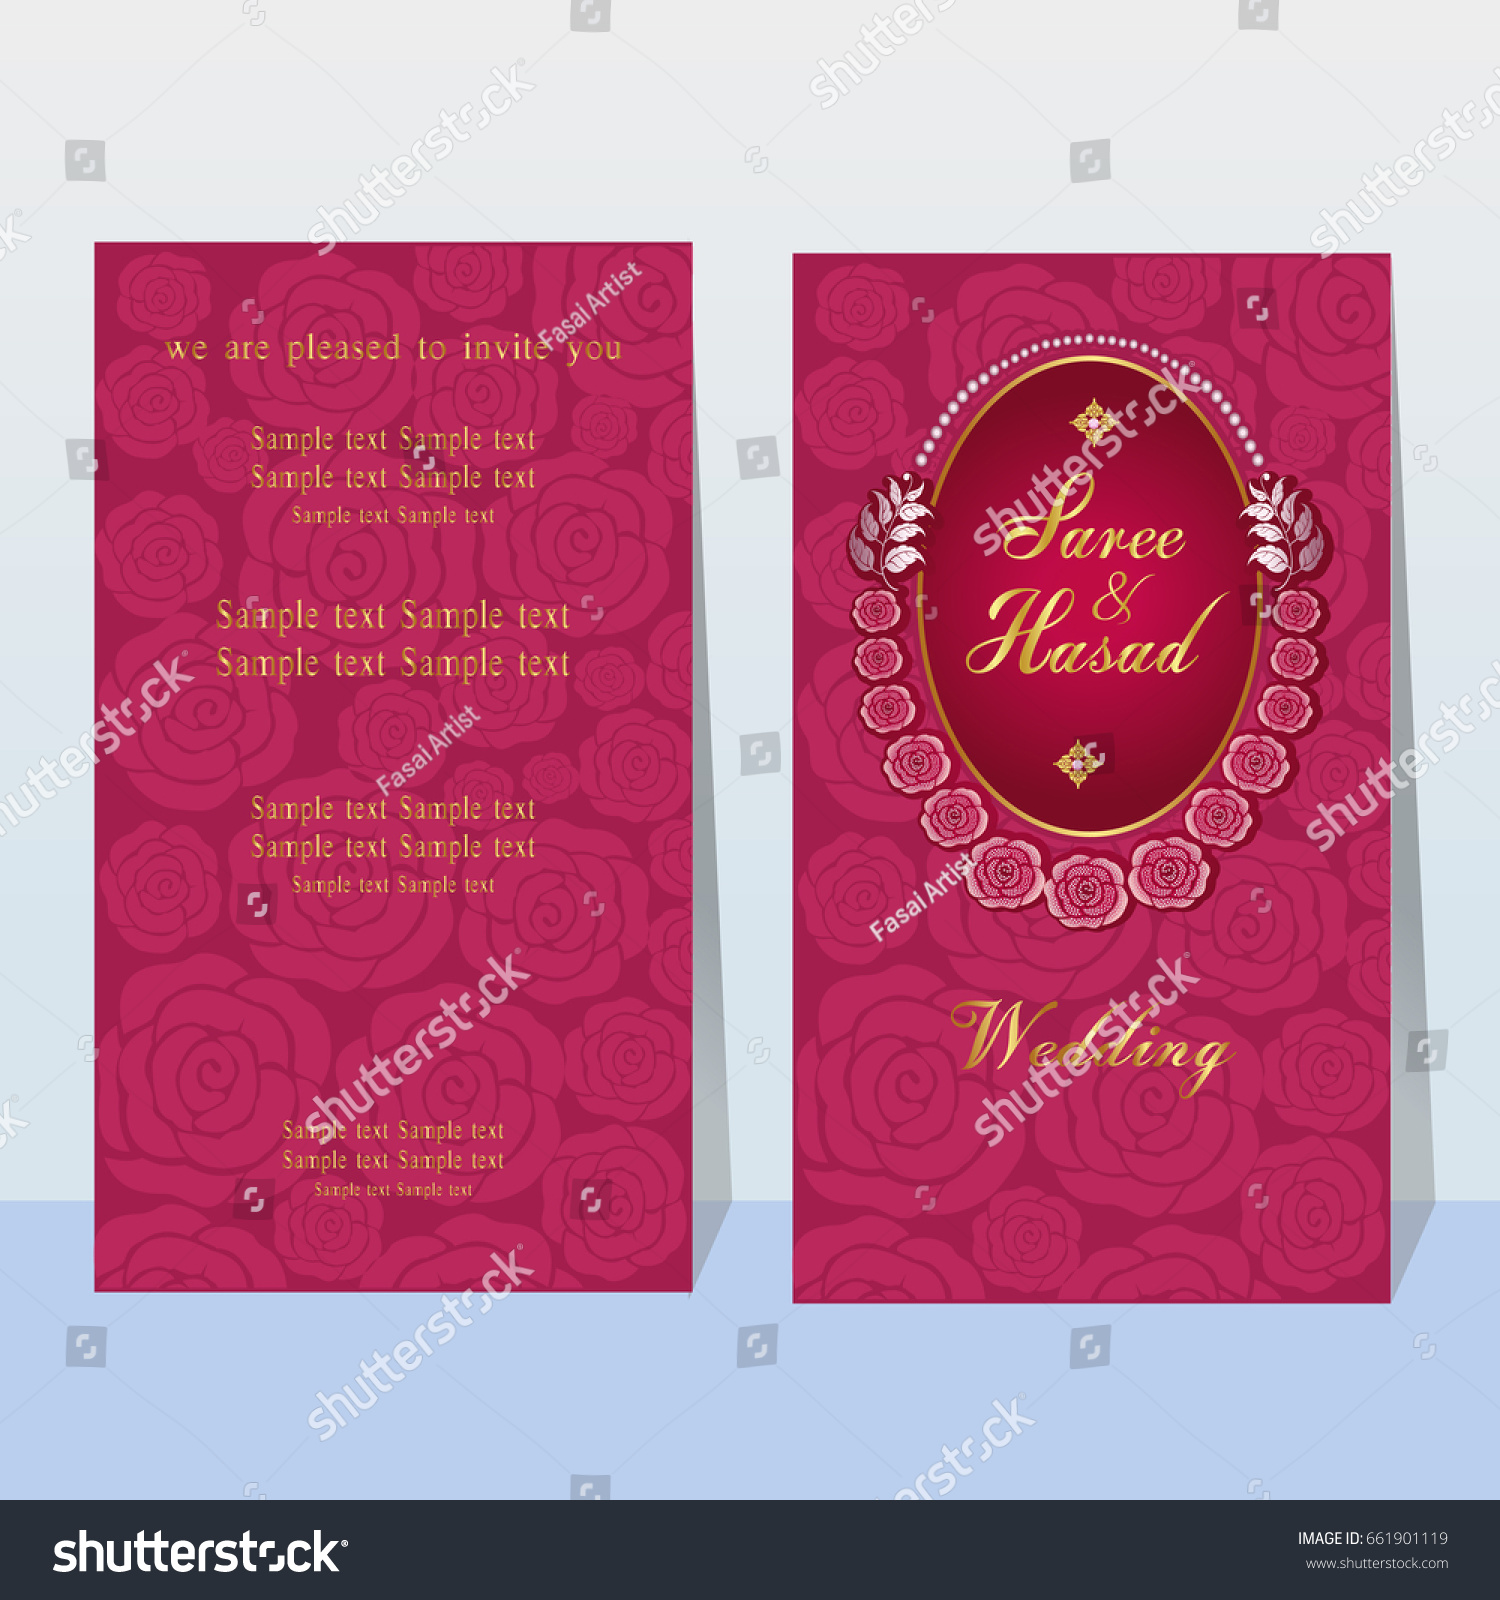 Indian Wedding Invitation Card Abstract Background Template Stock ...